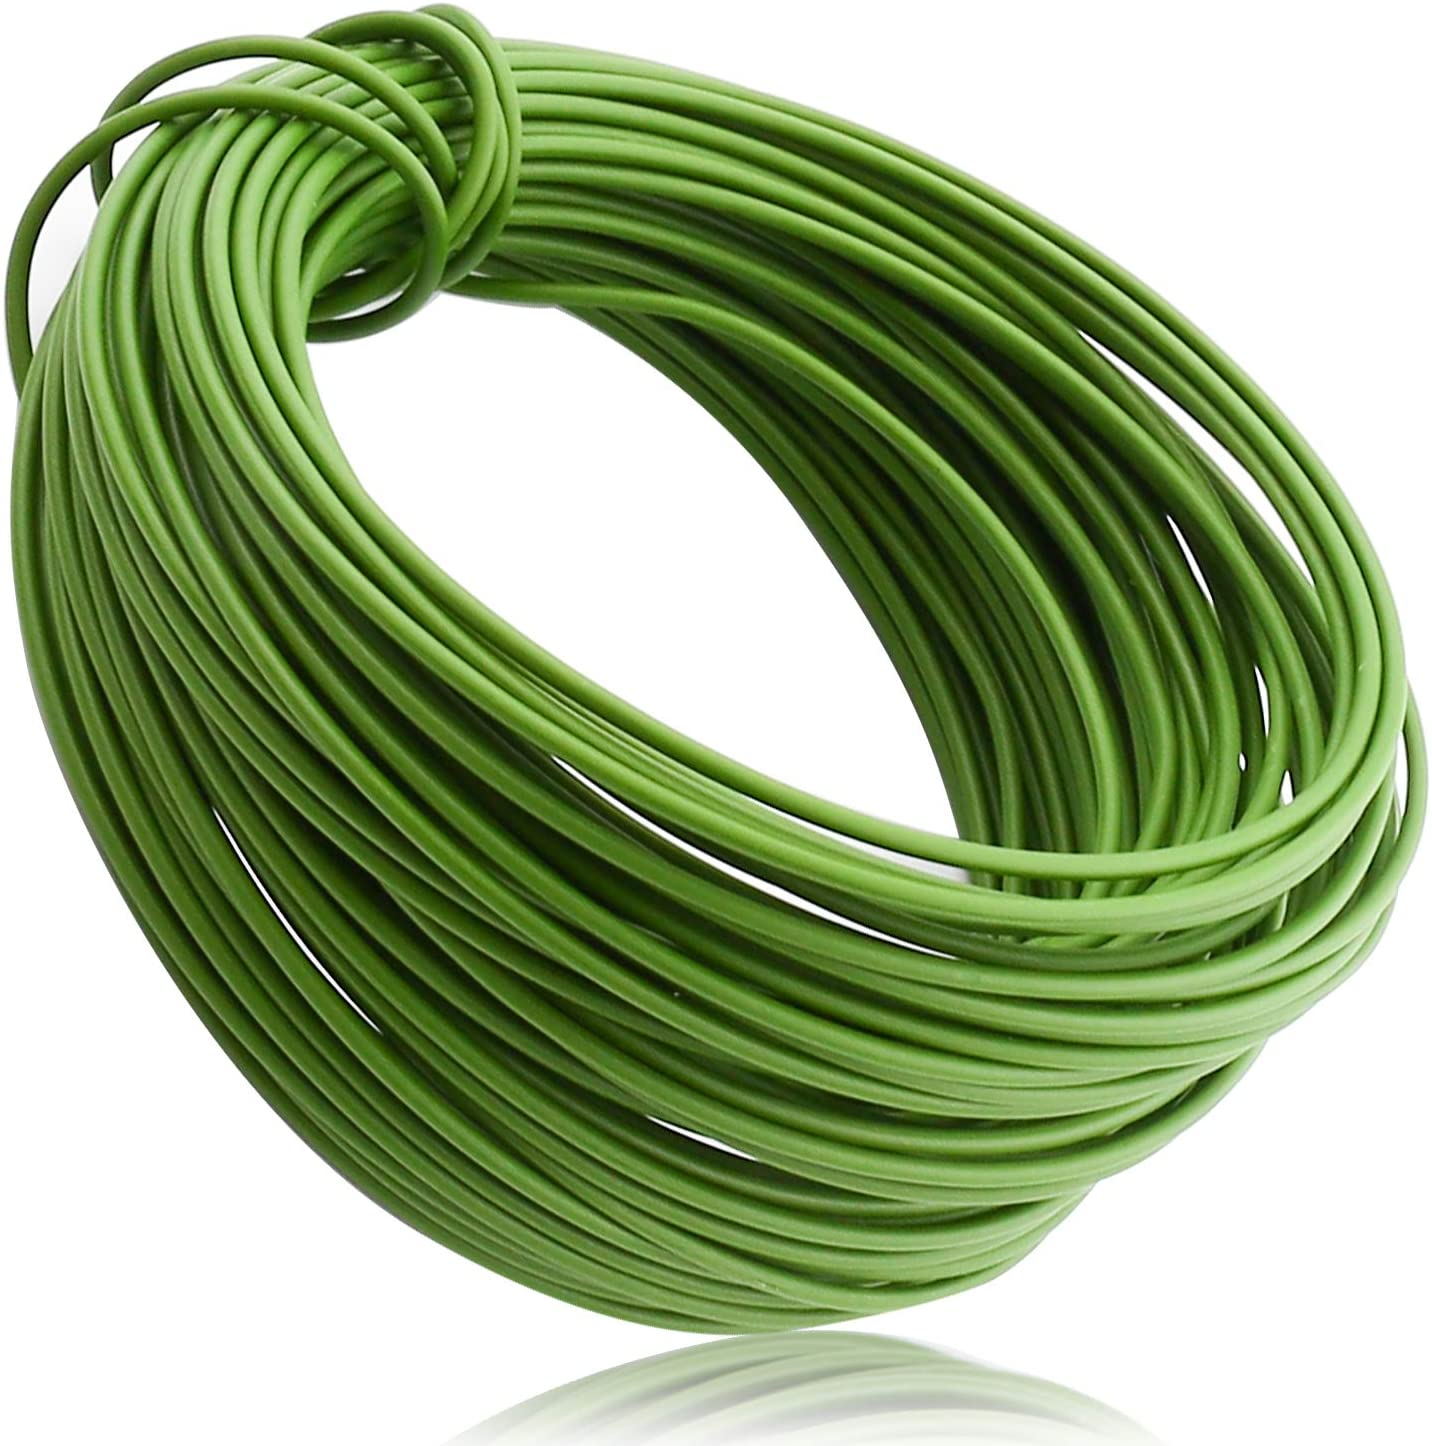 Plant Soft Ties 65.6 Feet, All-Purpose Garden Wire Ties, Green Coated Twist Plant Ties, Green Plant Ties, Plant Twist Ties for Plant Support, Home & Office